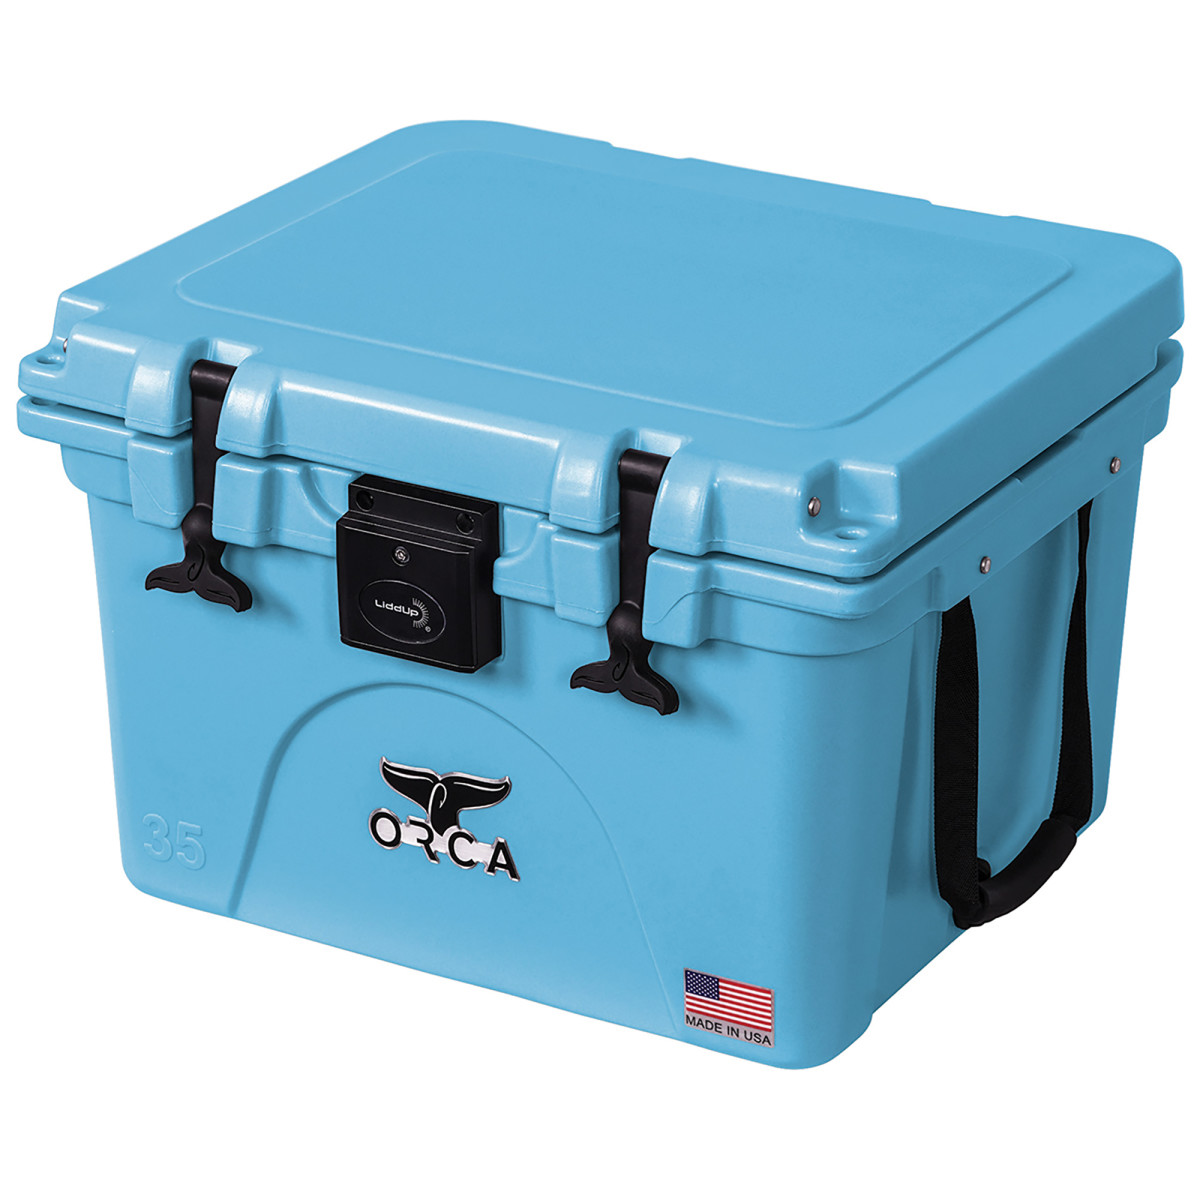 ORCLBLU035 ORCA Light Blue Liddup 35 Cooler (2)